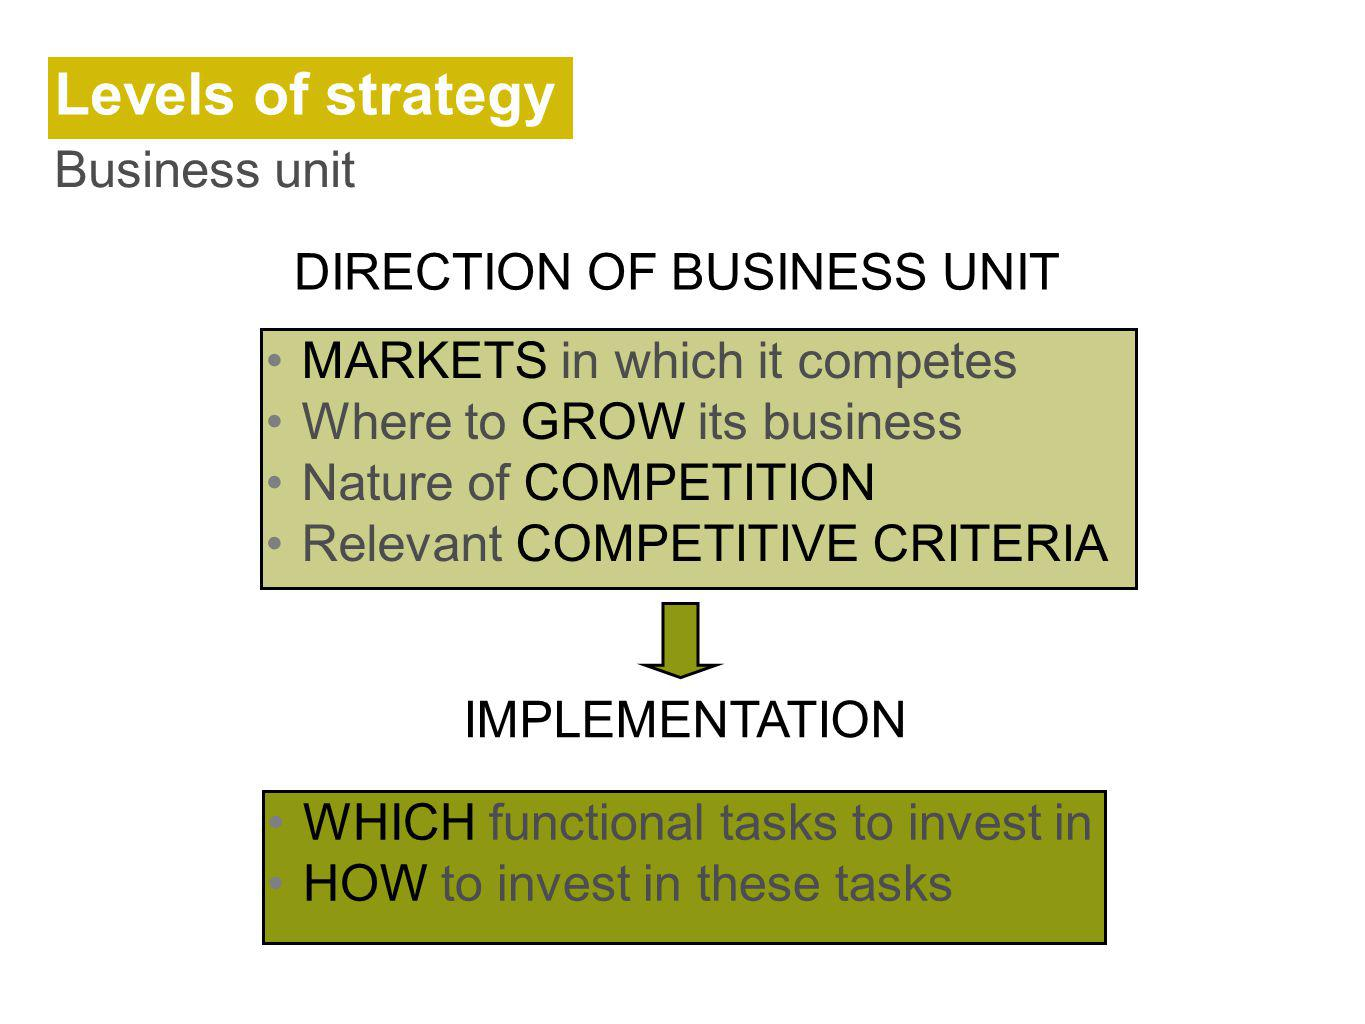 DIRECTION OF BUSINESS UNIT